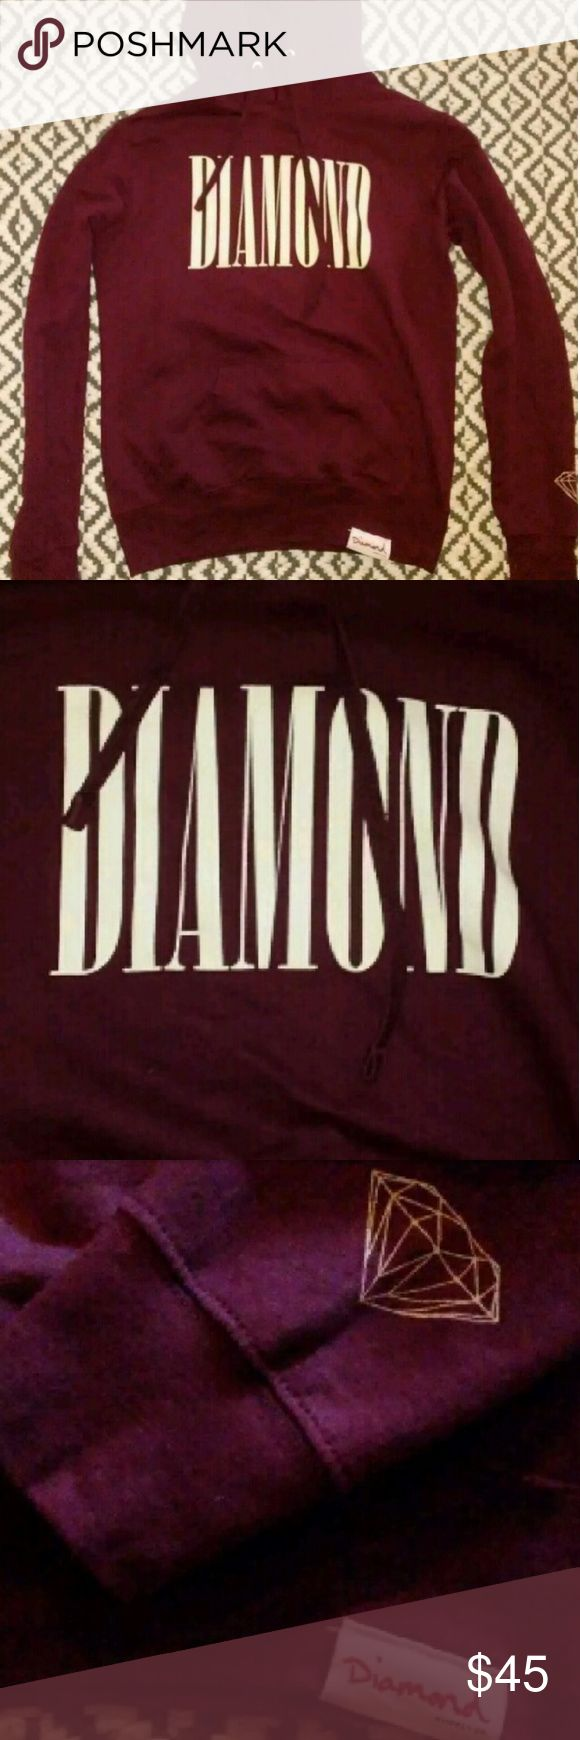 Diamond Supply Company Co Hoodie Sweatshirt XS Only worn once. Laid flat to dry. Gorgeous. Diamond Supply Co. Tops Sweatshirts & Hoodies